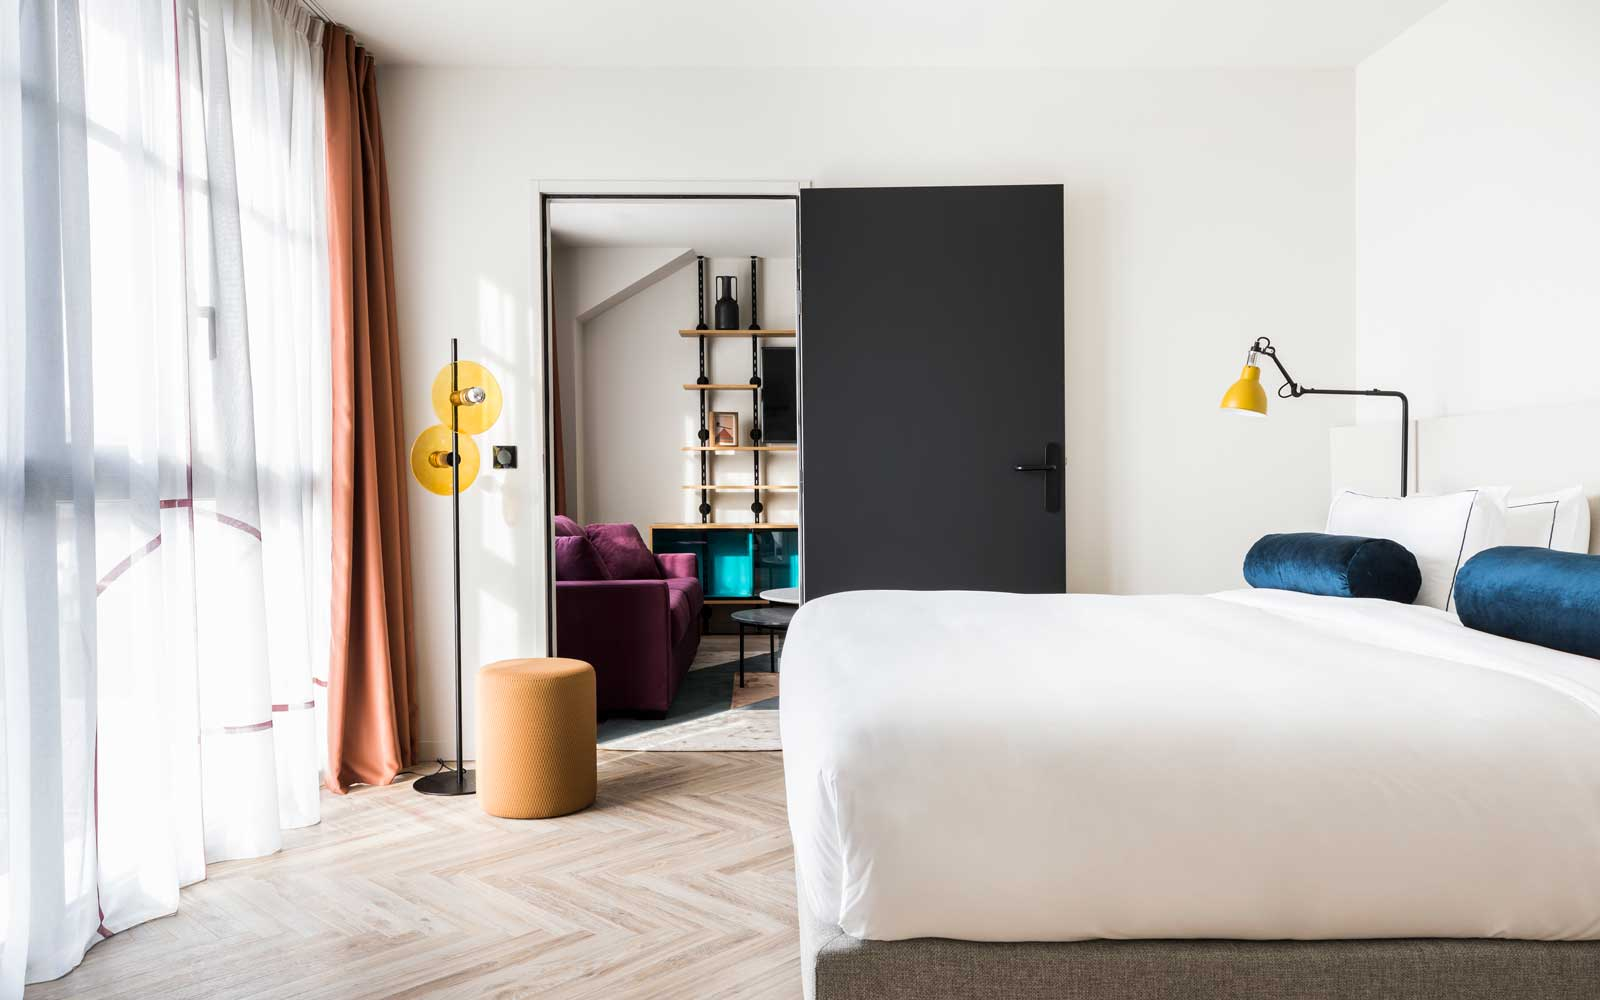 This Lively Neighborhood in Paris Is Home to the Coolest New Hotels